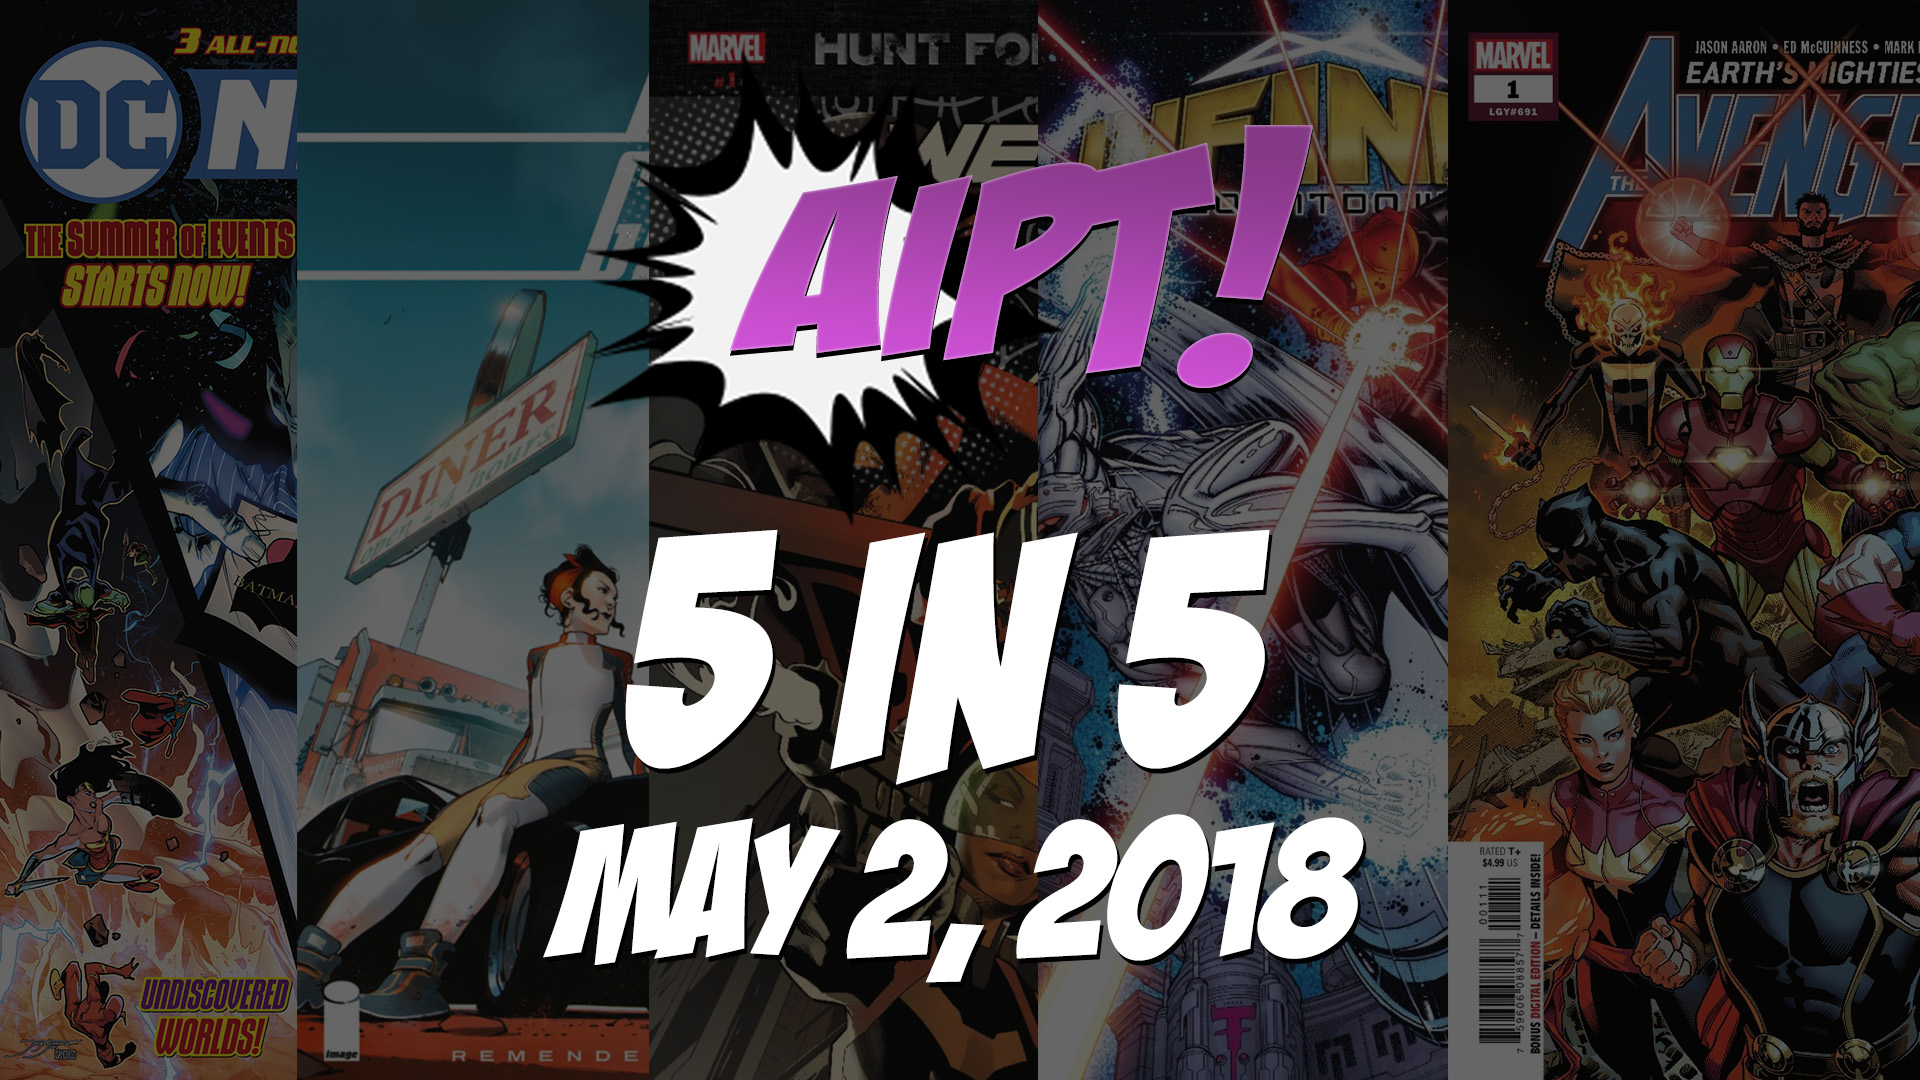 May 2, 2018's 5 in 5: The five comic books you should buy this week